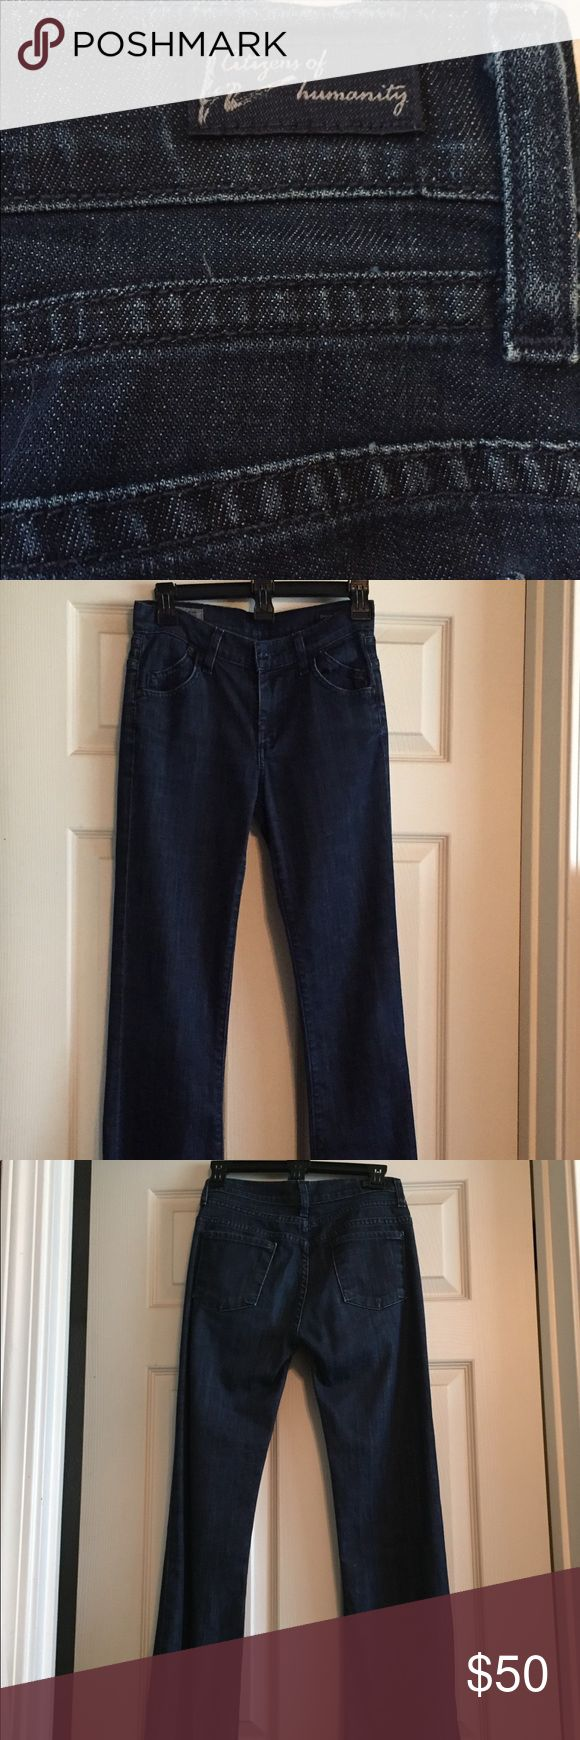 Citizens of Humanity jeans Gently used high rise, wide leg dark blue jeans. Size 25 and in good condition, a nice dark blue. Can be worn as a dressier Jean or trouser Jean for work or just to wear any day! COH is a quality brand! Citizens Of Humanity Jeans Flare & Wide Leg